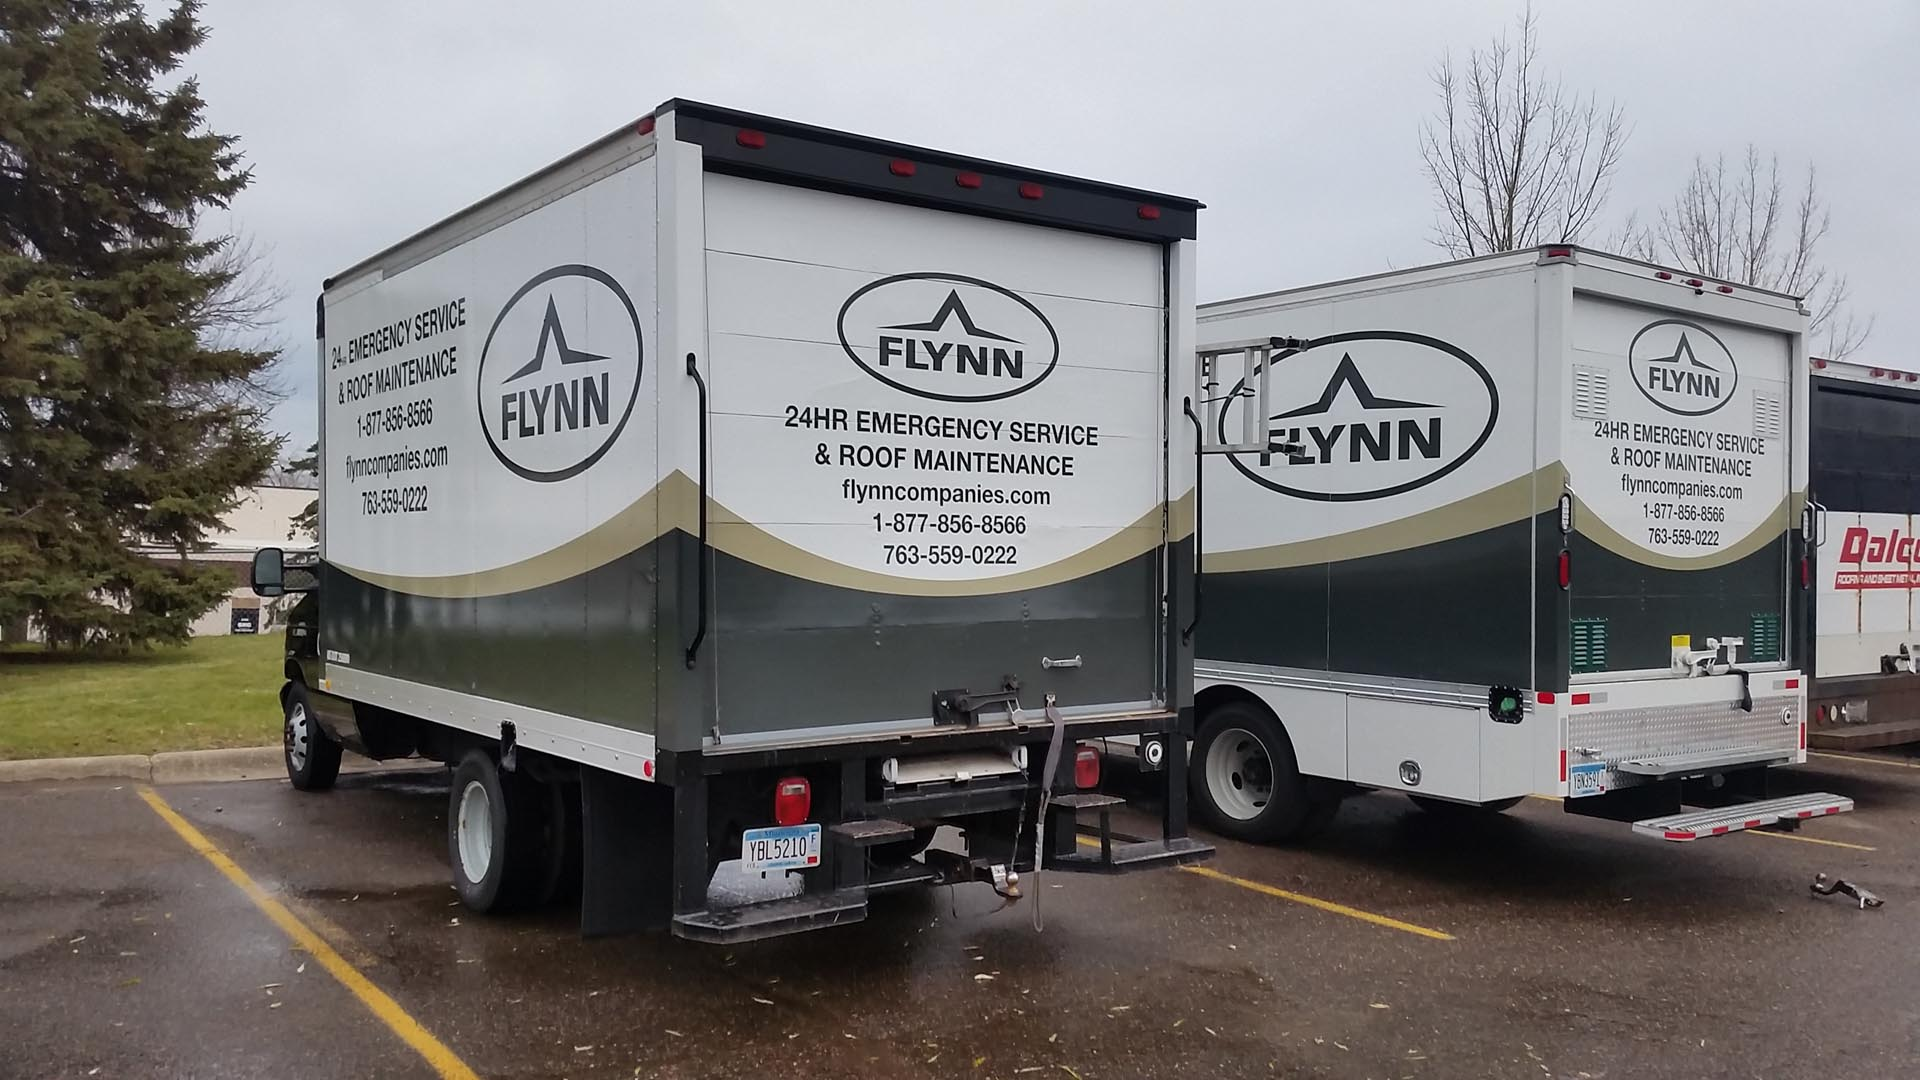 Specialty Fleet Graphics Mississauga And Gta Myc Graphics,Upper Arm Best Small Tattoo Designs For Arms